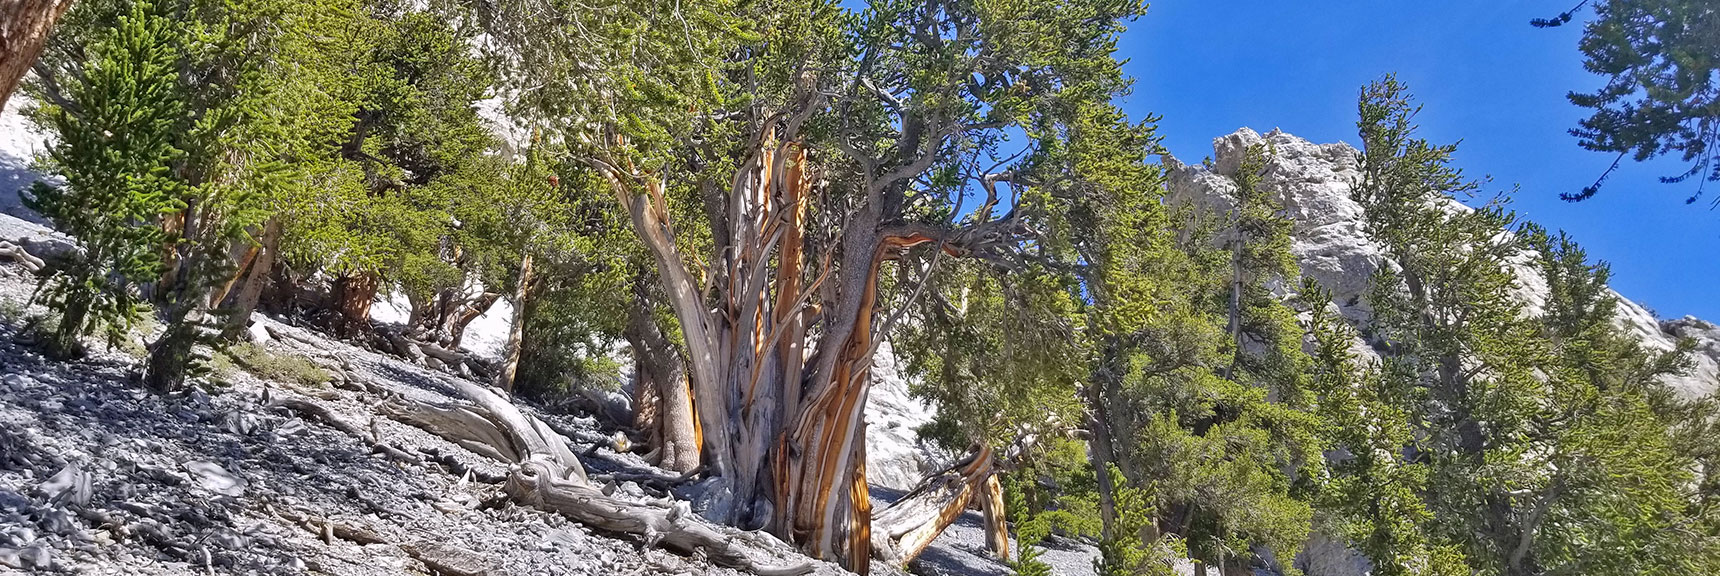 Bristlecone Pine Trees on an Avalanche Slope East of Mummy Mountain   Mummy Mountain Northeast Approach Wilderness Navigation, Nevada